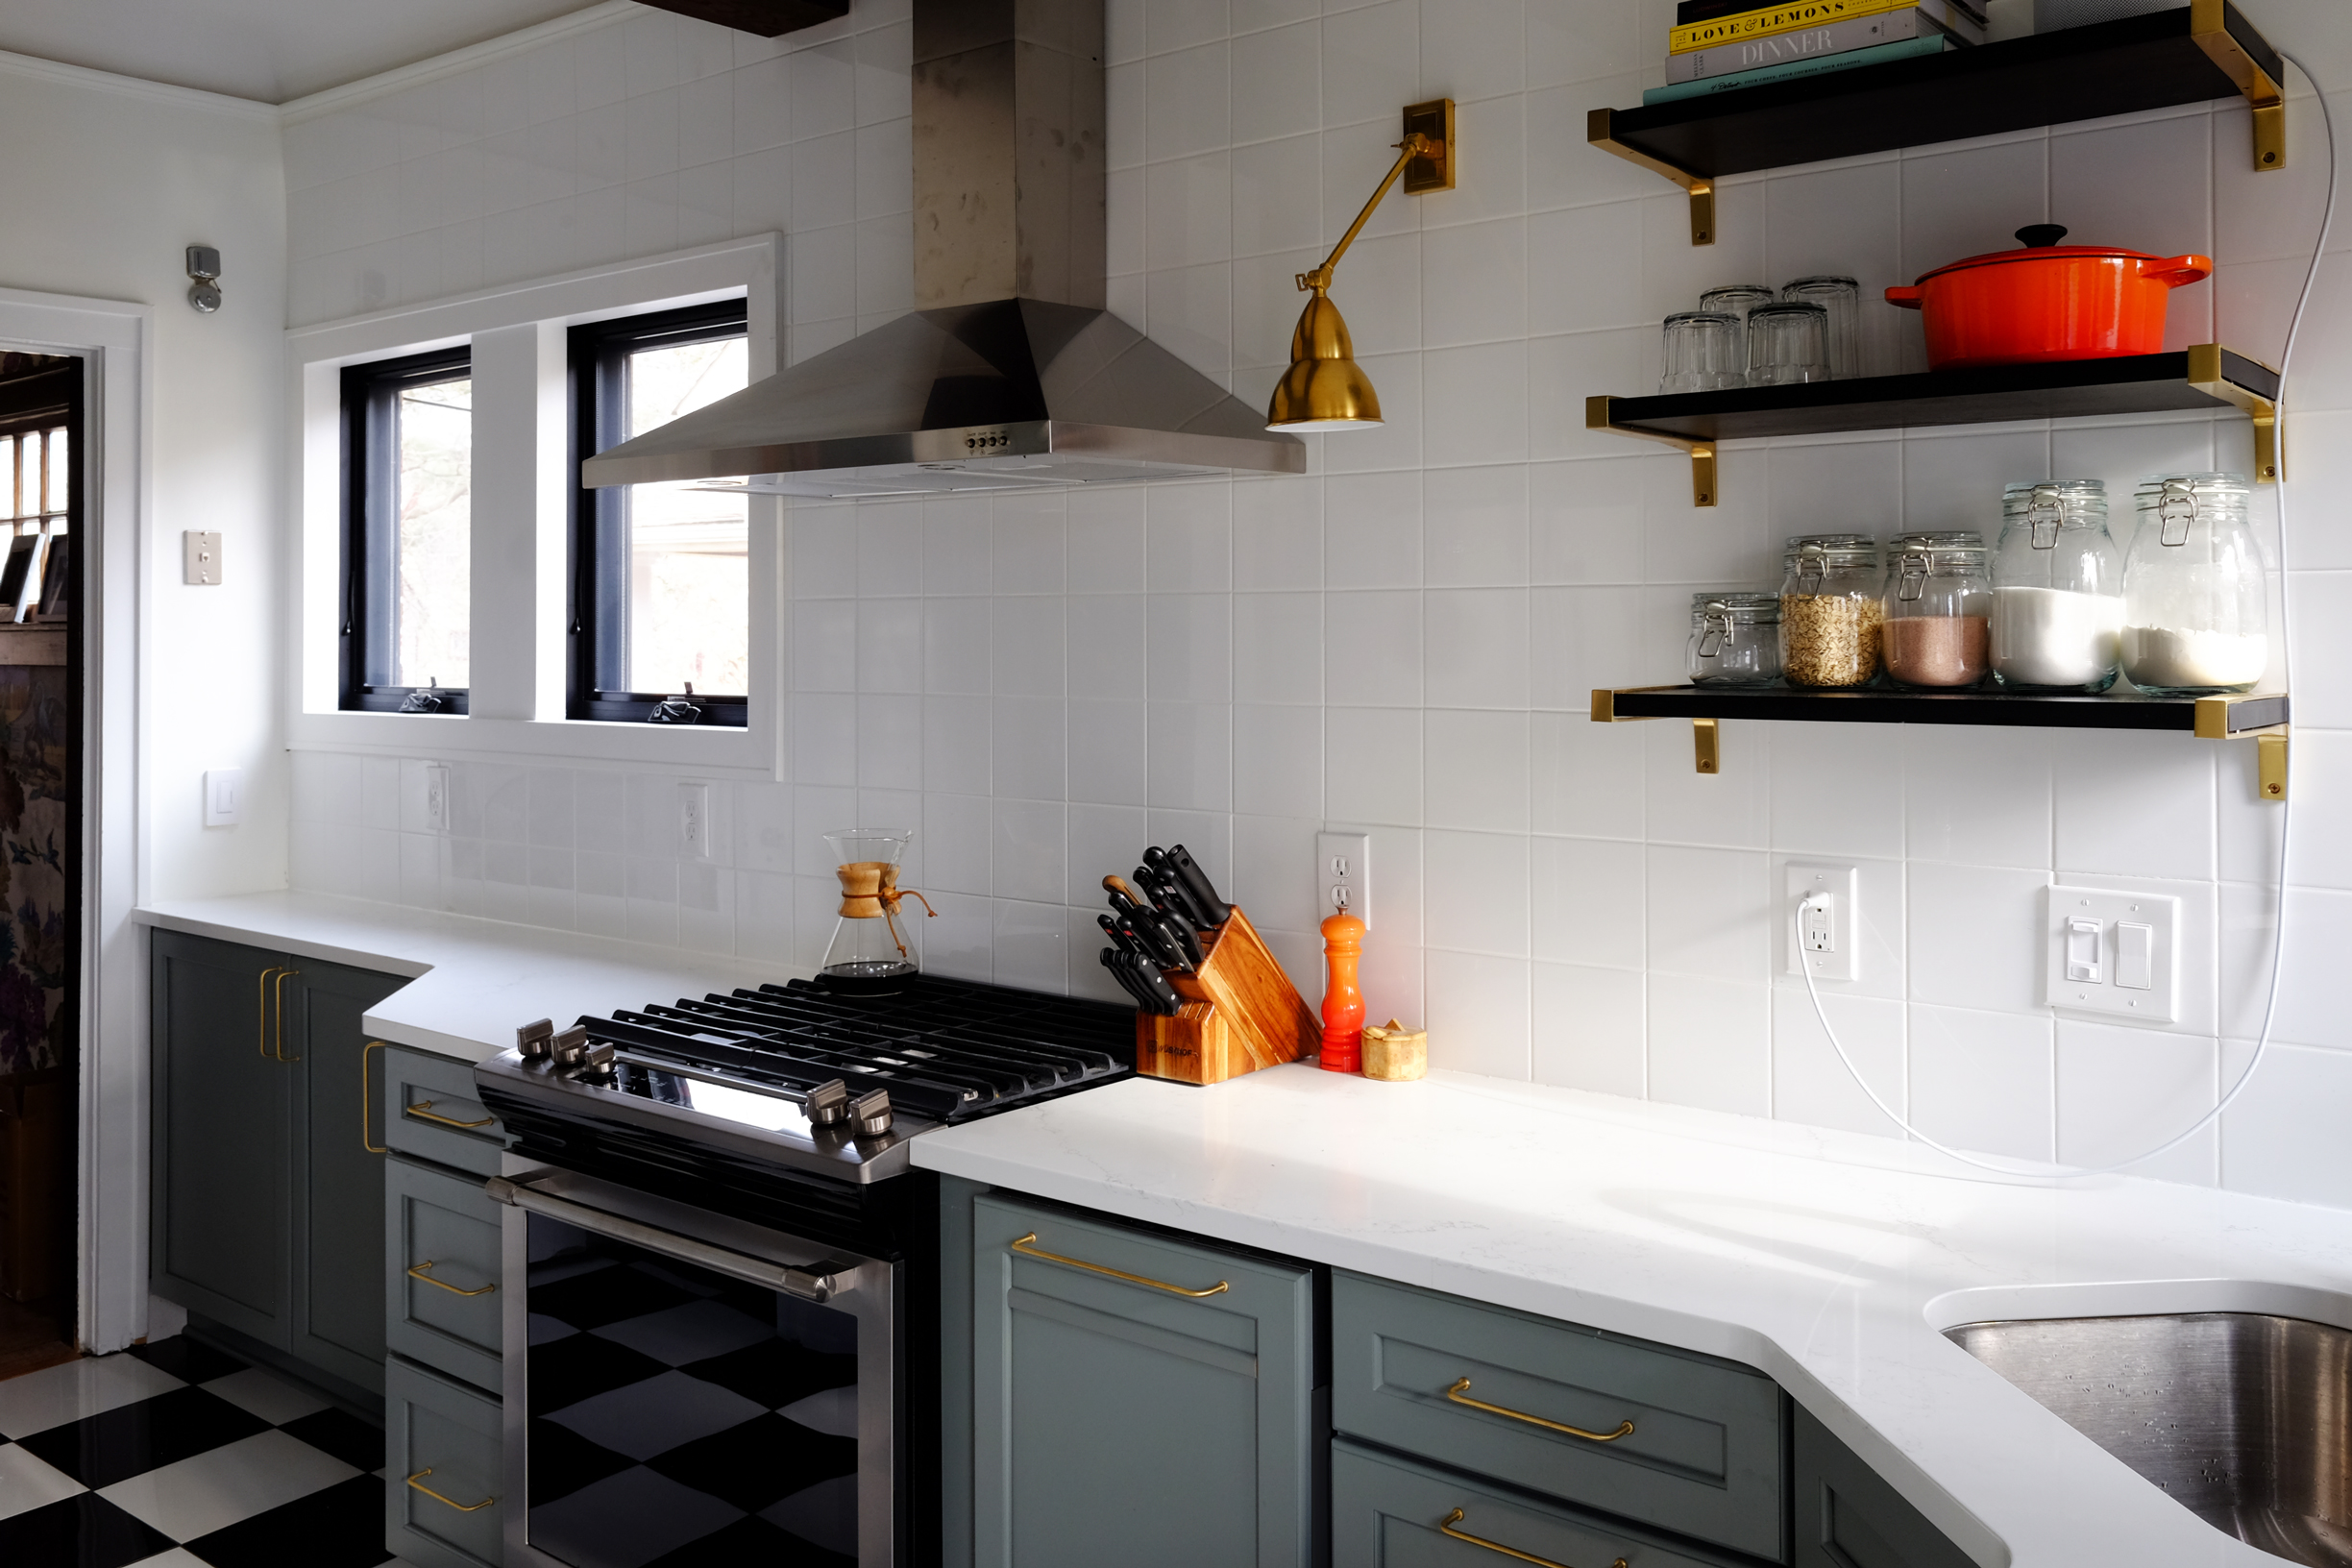 1920s Bungalow Kitchen Remodel Photos Apartment Therapy